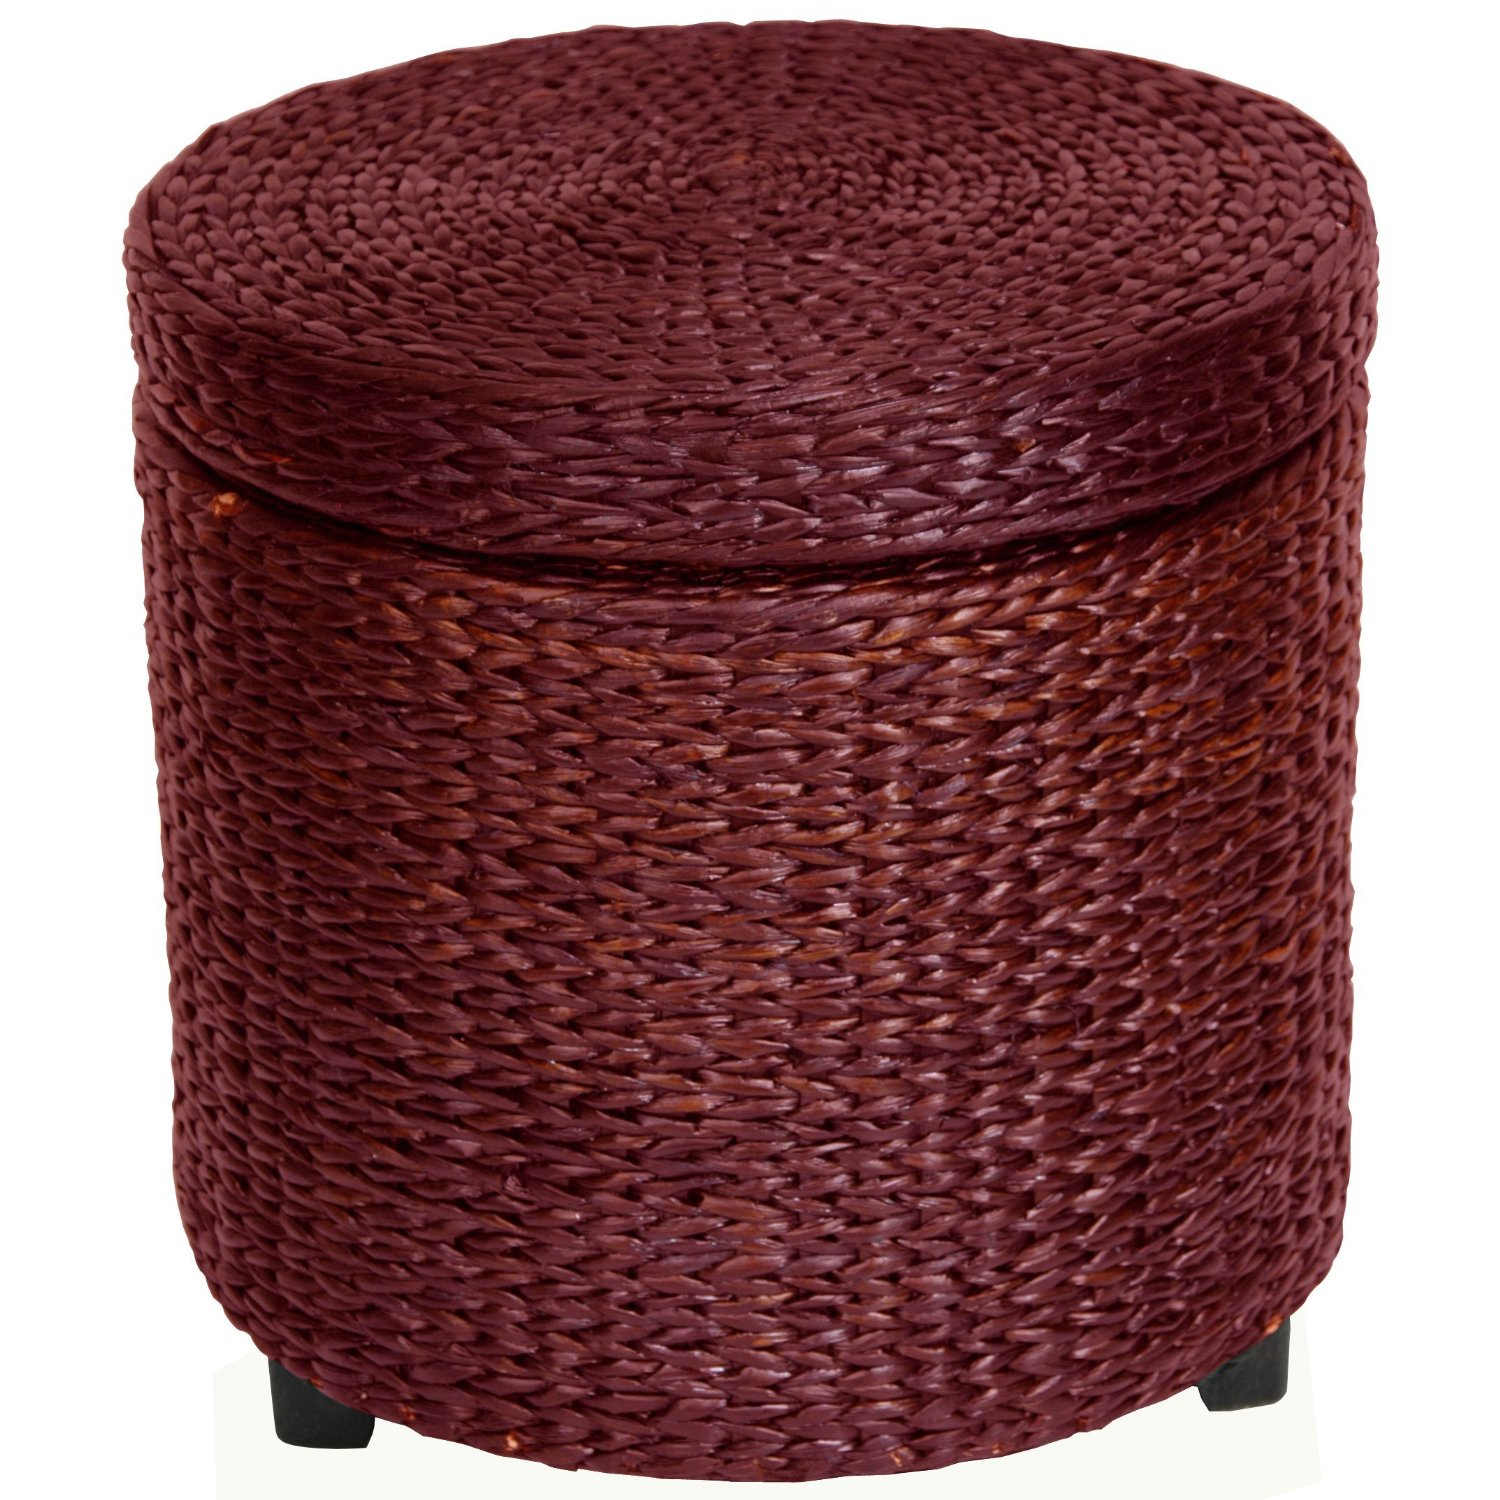 Total Fab Wicker Storage Trunk Coffee Tables